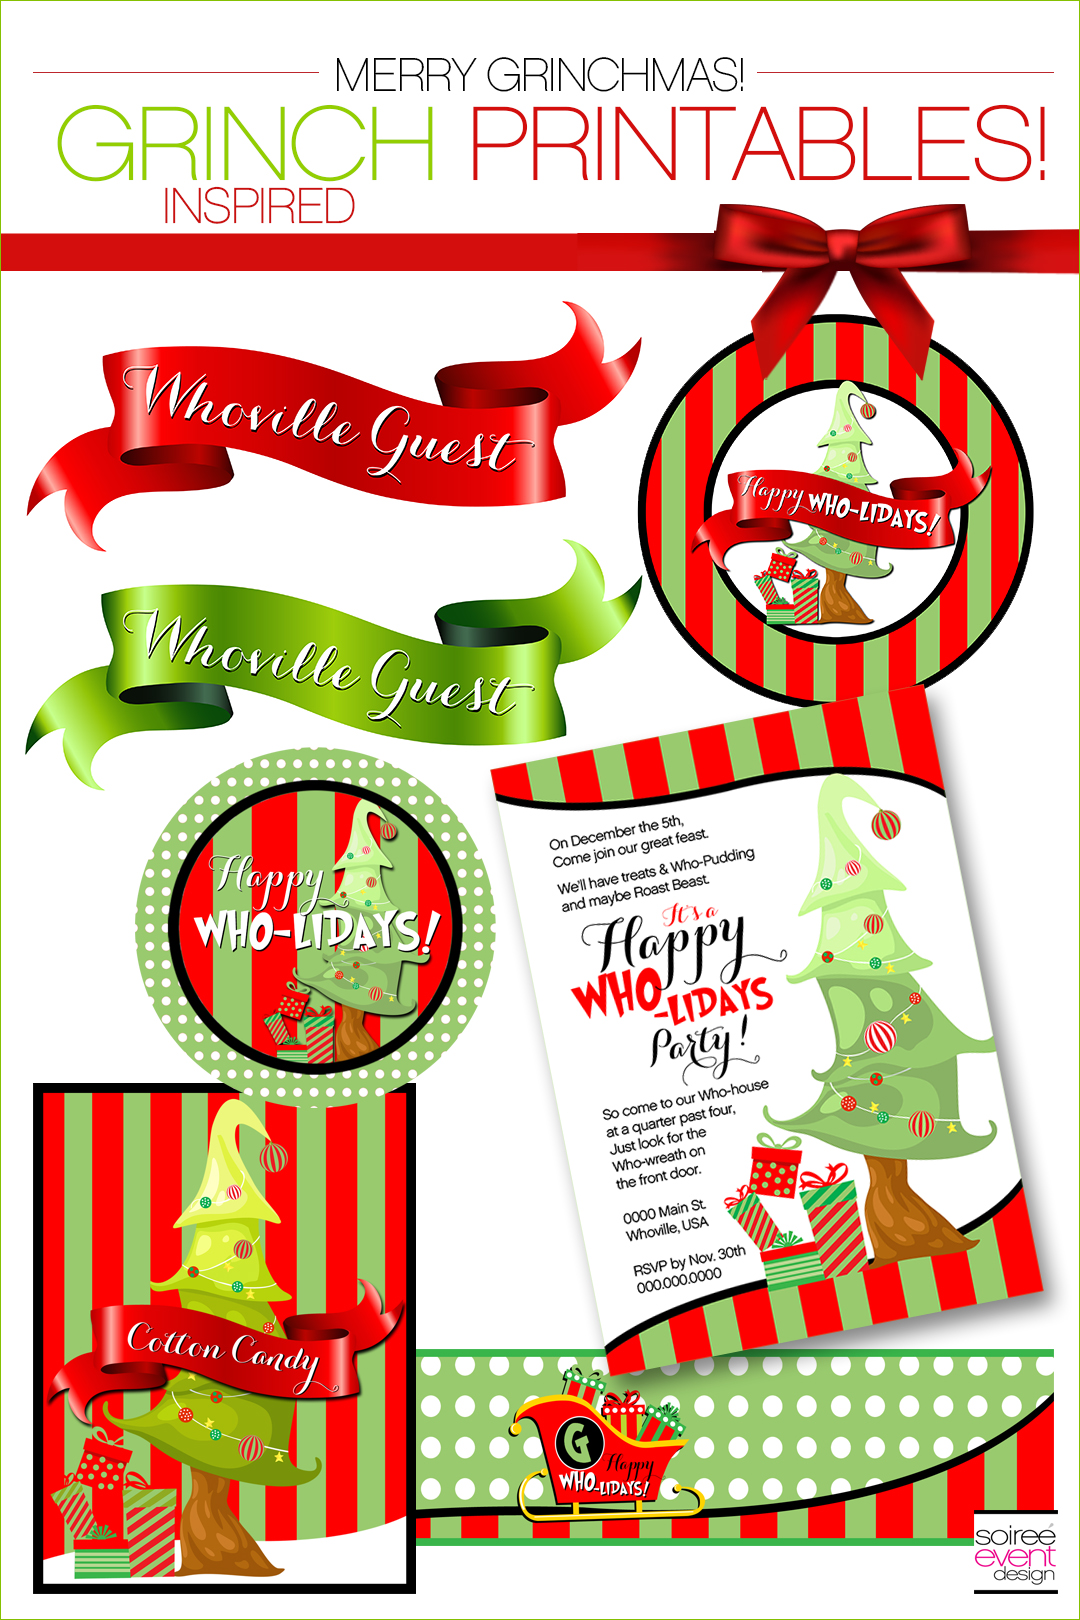 Grinch Party Ideas - Grinch Party Printables